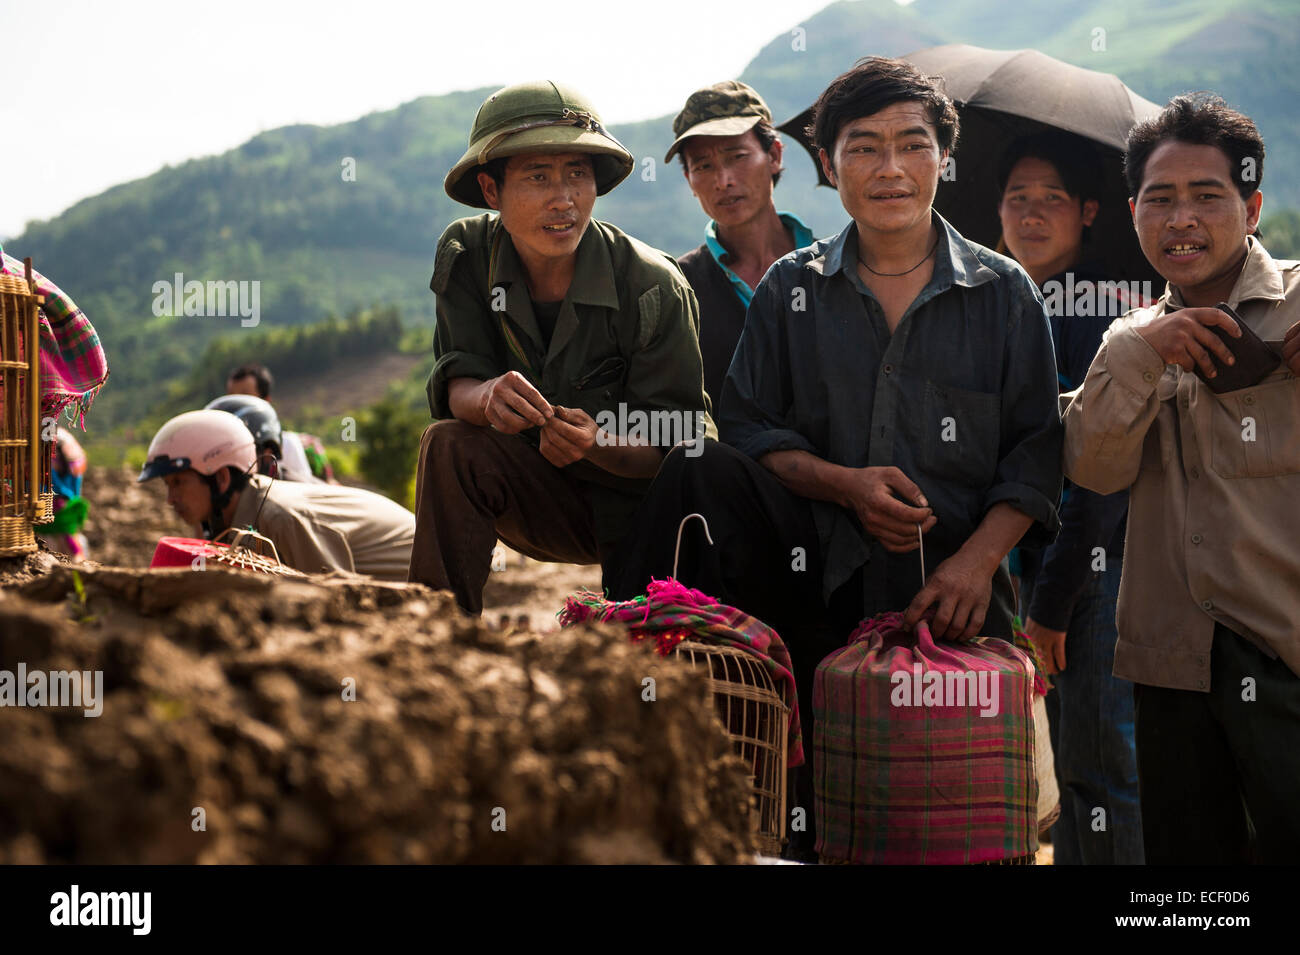 Hmong men observing song birds for sale at the Bac Ha Market - Stock Image